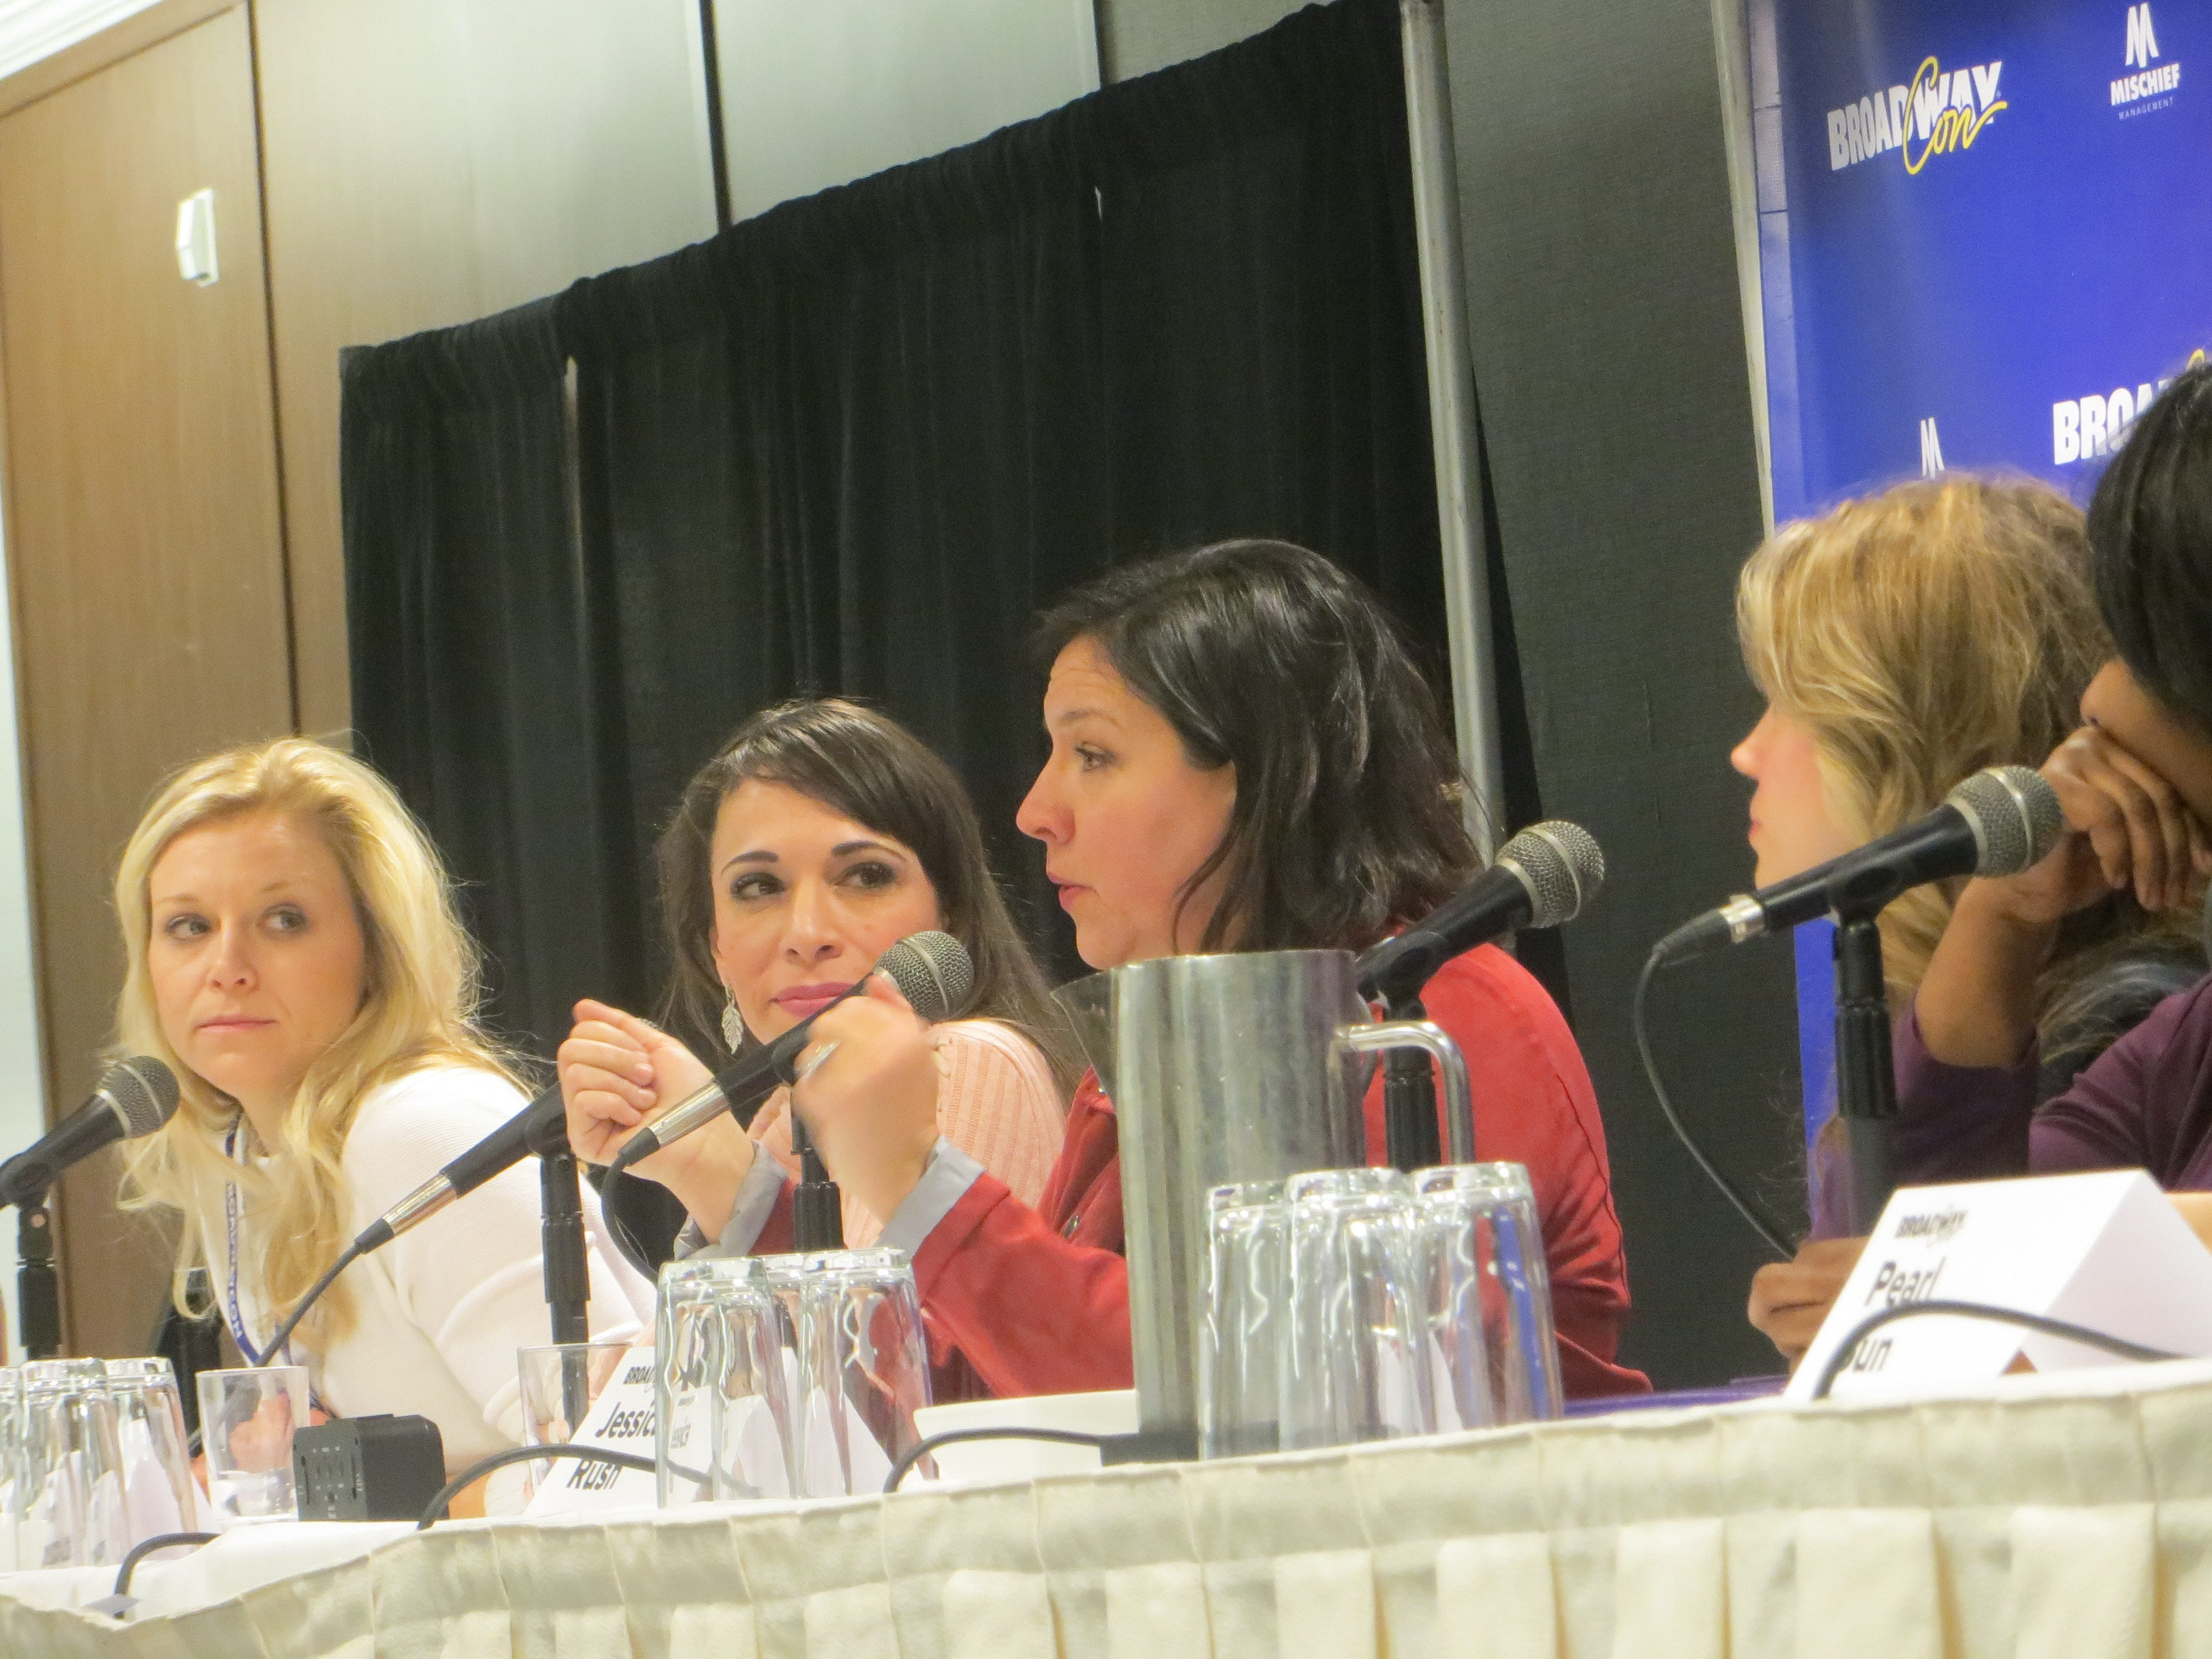 Cara Cooper, Ellyn Marie Marsh, Kristen Anderson-Lopez, Jessica Rush and NaTasha Yvette Williams during From Broadway to Babies and Back Again panel at BroadwayCon 2019, held Jan. 11 to 13, 2019, at the New York Hilton Midtown in Manhattan.